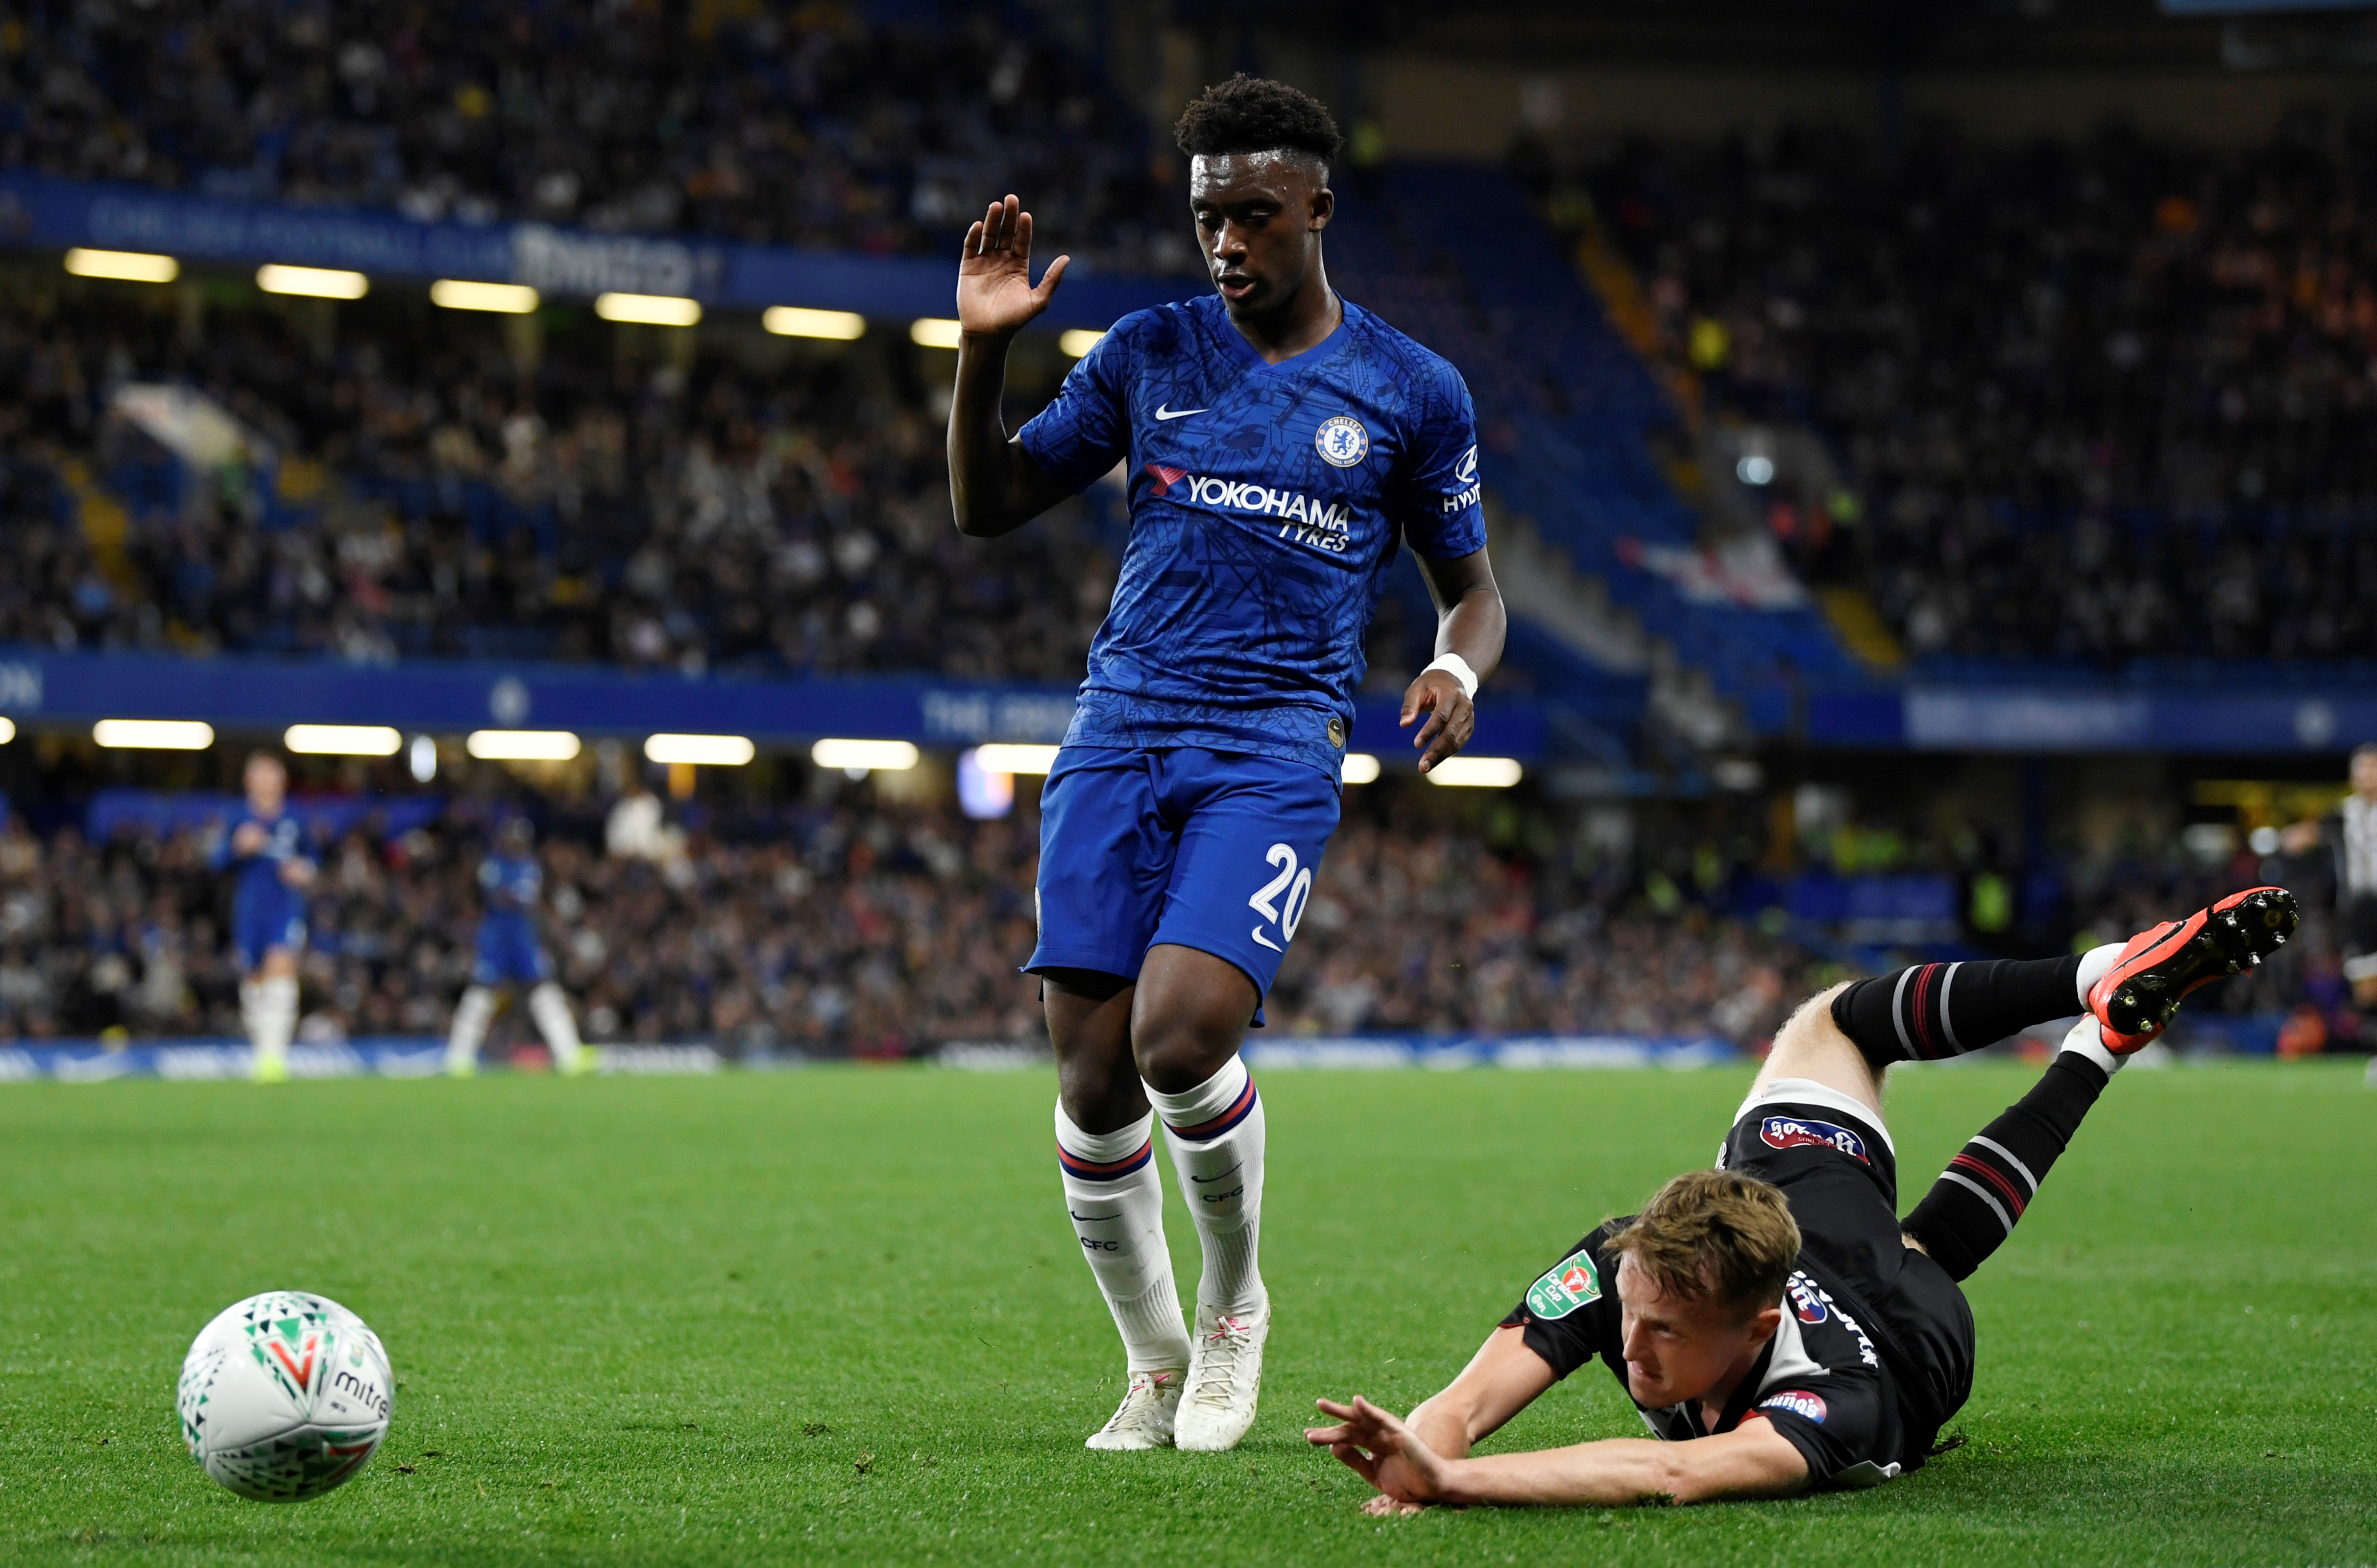 Lampard's view on Hudson-Odoi's performance against Newcastle